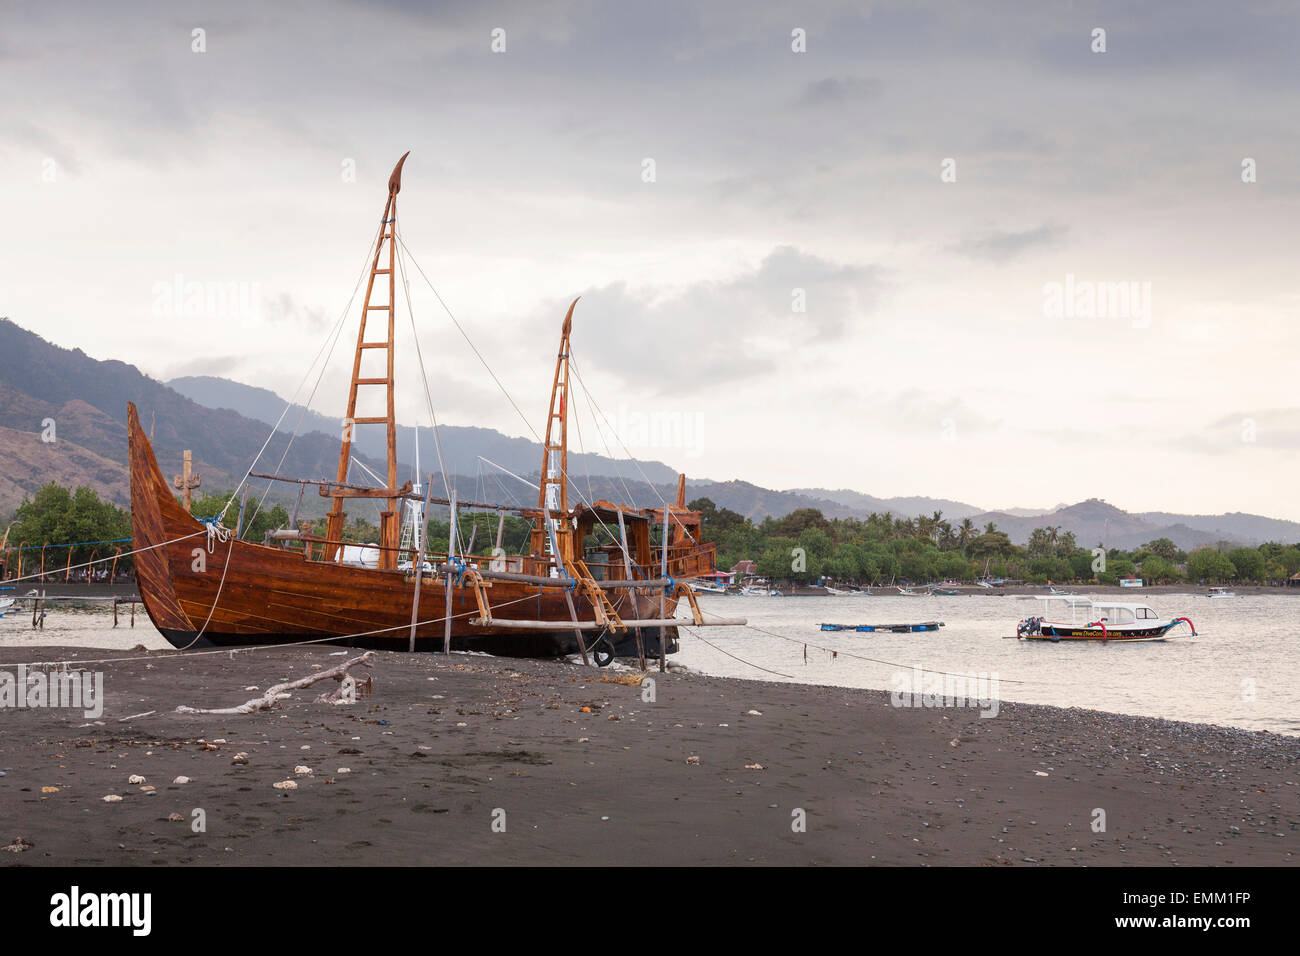 Replica merchant ship, traditional wooden boat on beach, Pemuteran, Bali, Indonesia - Stock Image